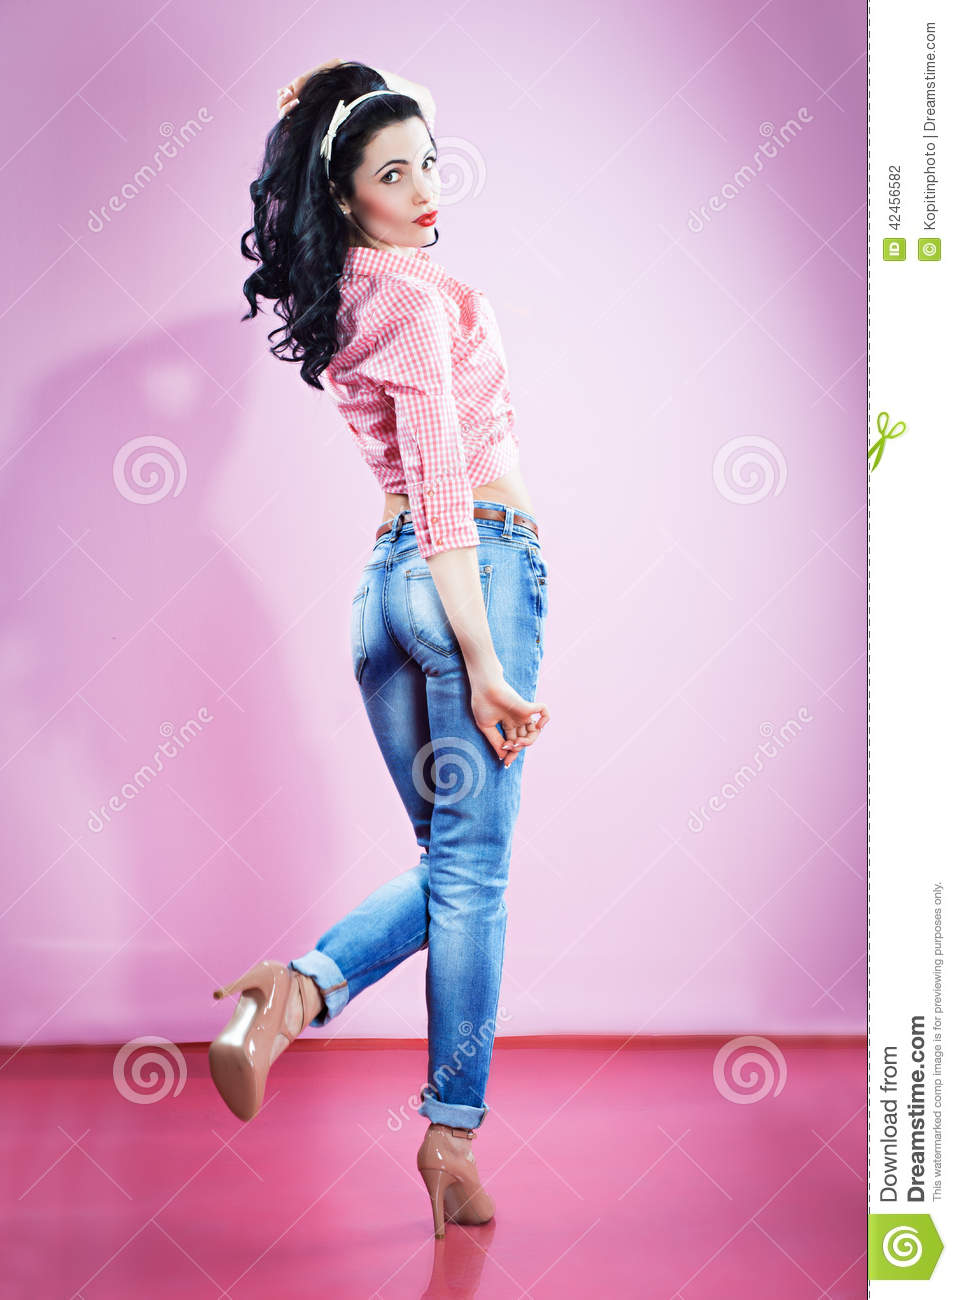 pin up girl in blue jeans stock photo image 42456582. Black Bedroom Furniture Sets. Home Design Ideas